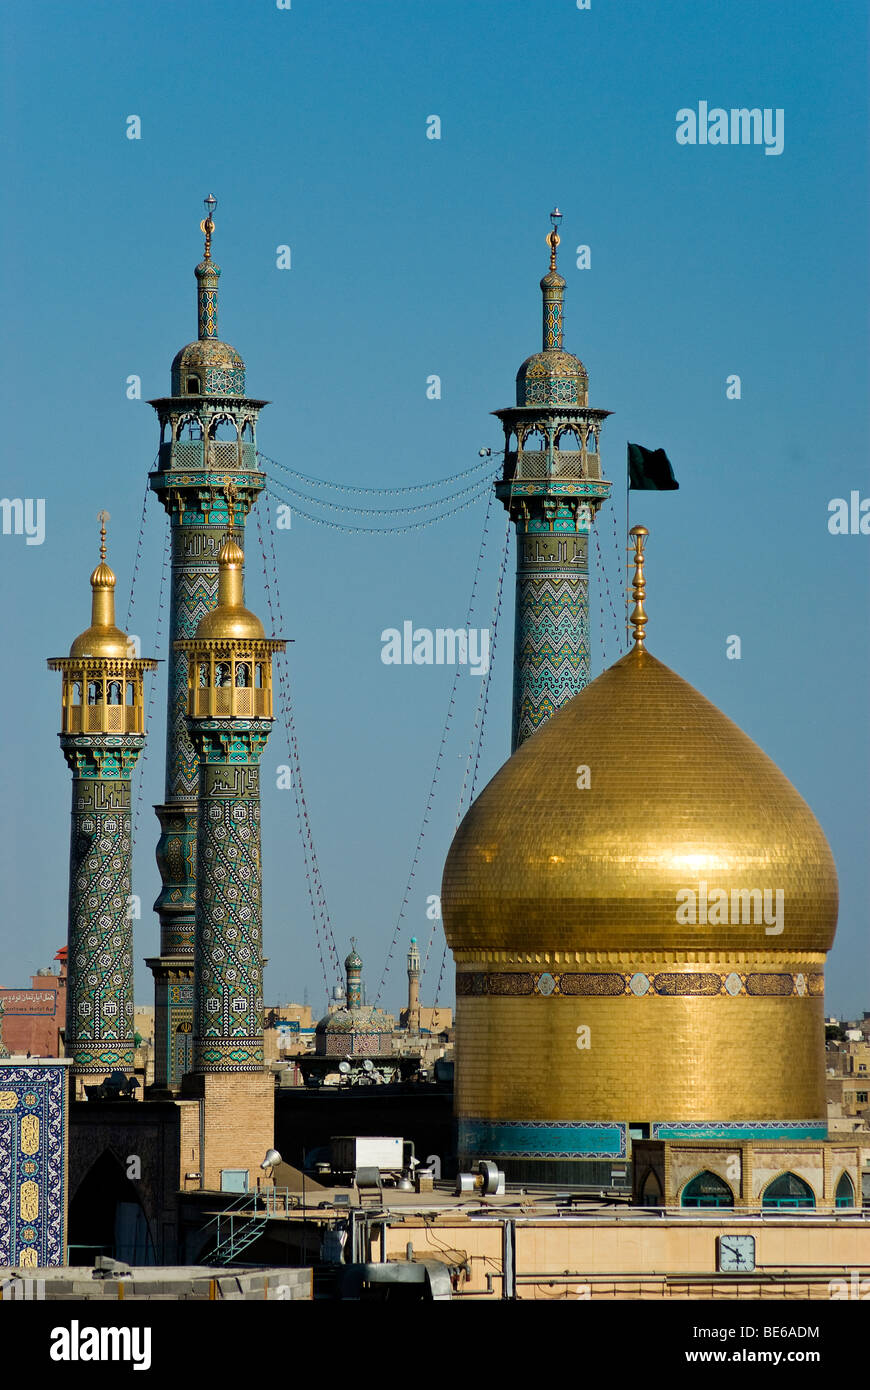 View of the Fatima al-Masumeh Shrine, Qom, Iran - Stock Image